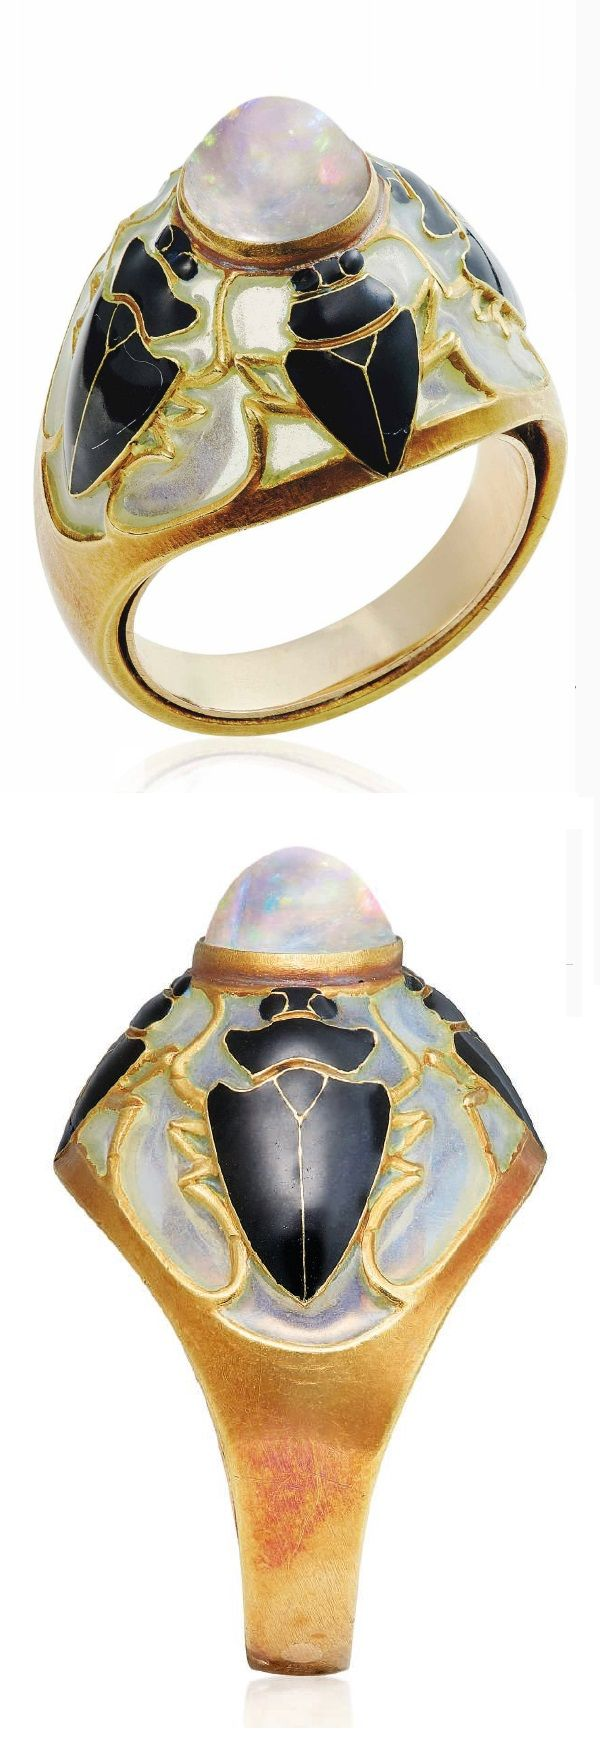 RENÉ LALIQUE - AN ART NOUVEAU MOONSTONE AND ENAMEL RING, CIRCA 1900. Centring a cabochon moonstone, to the window enamel bombé surround, applied with four black enamel scarabs, with French assay mark for gold, signed Lalique